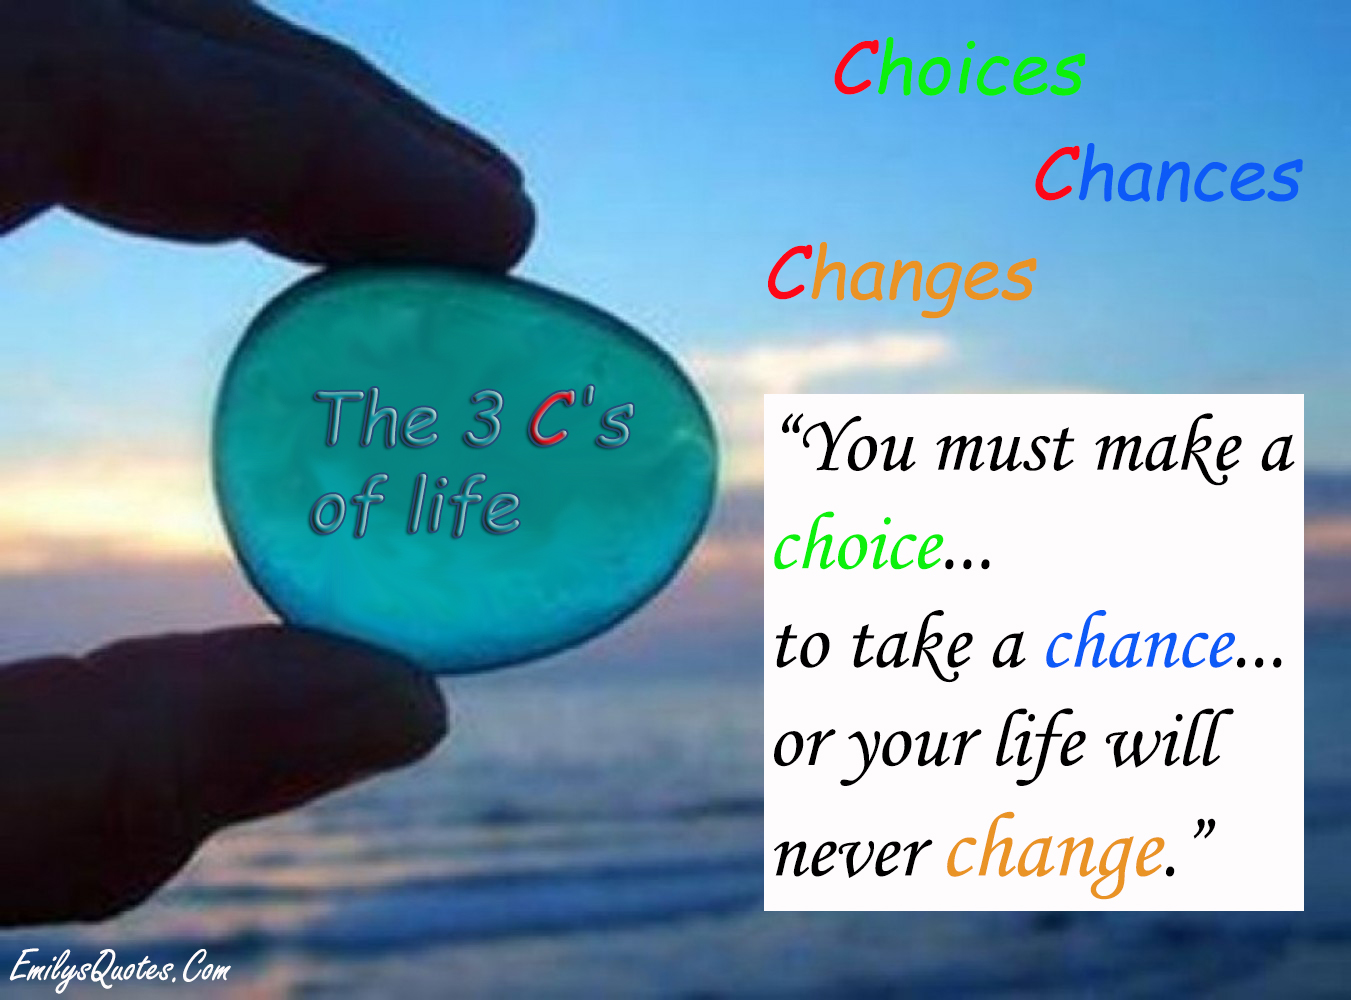 Inspirational Quotes To Change Your Life You Must Make A Choice To Take A Chance Or Your Life Will Never